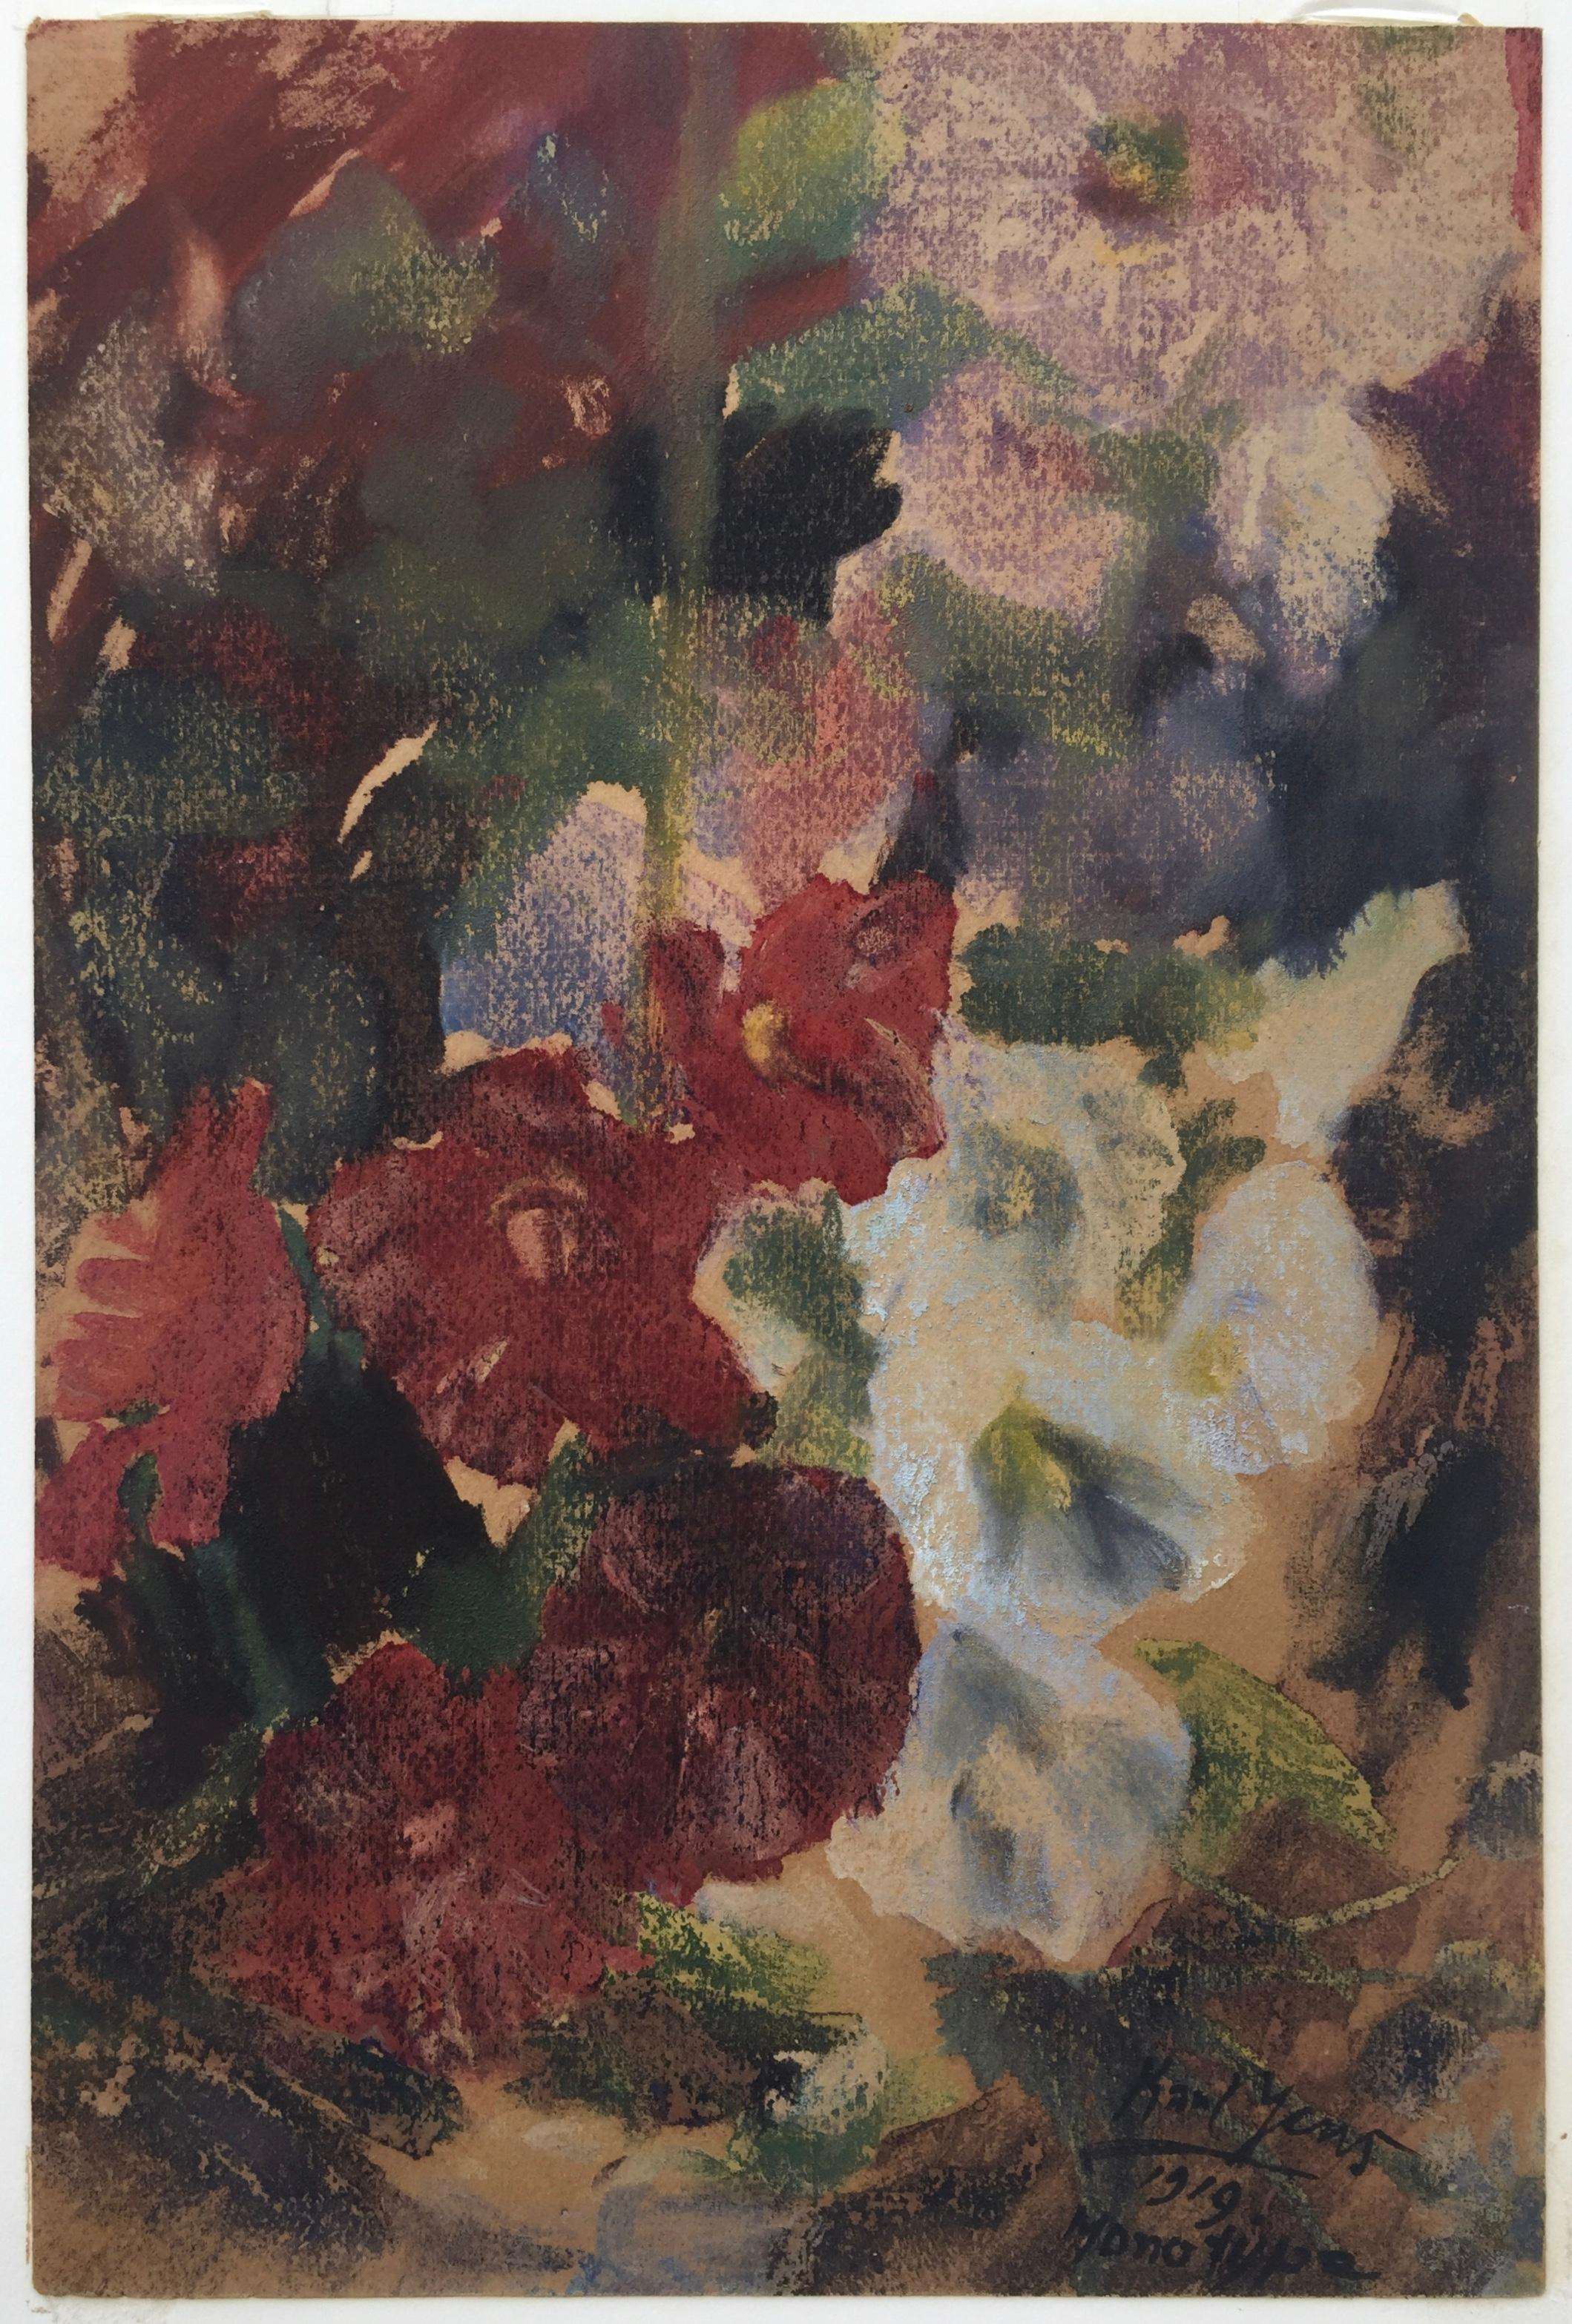 FLOWERS - Monotype from 1997 Smithsonian Exhibition